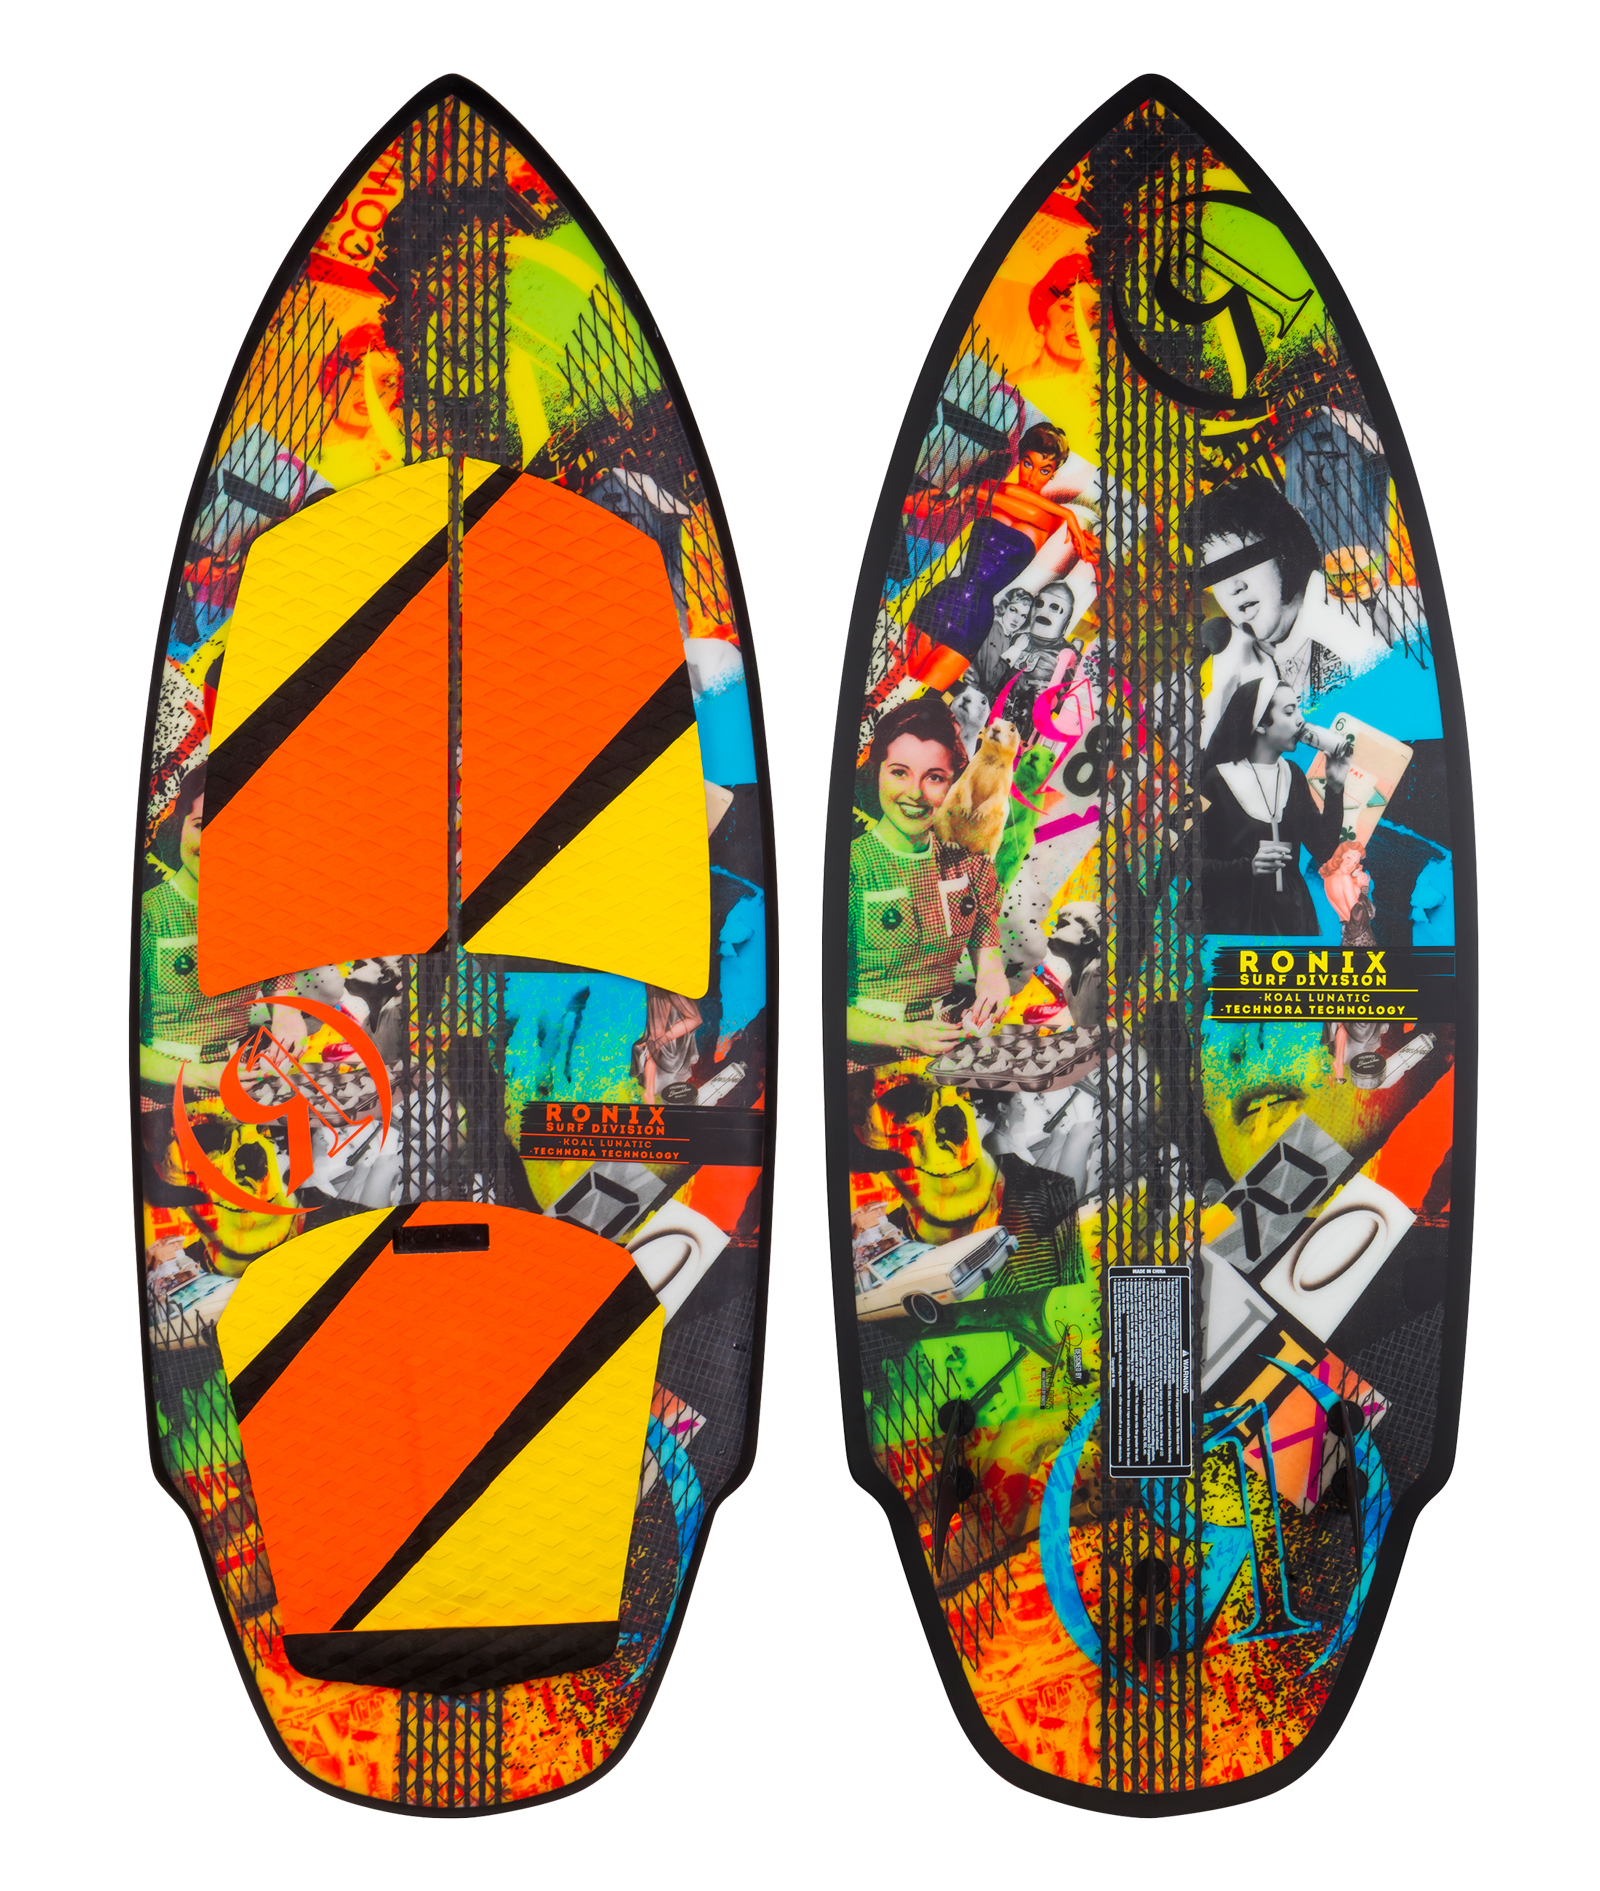 KOAL TECHNORA THE LUNATIC WAKESURFER RONIX 2017